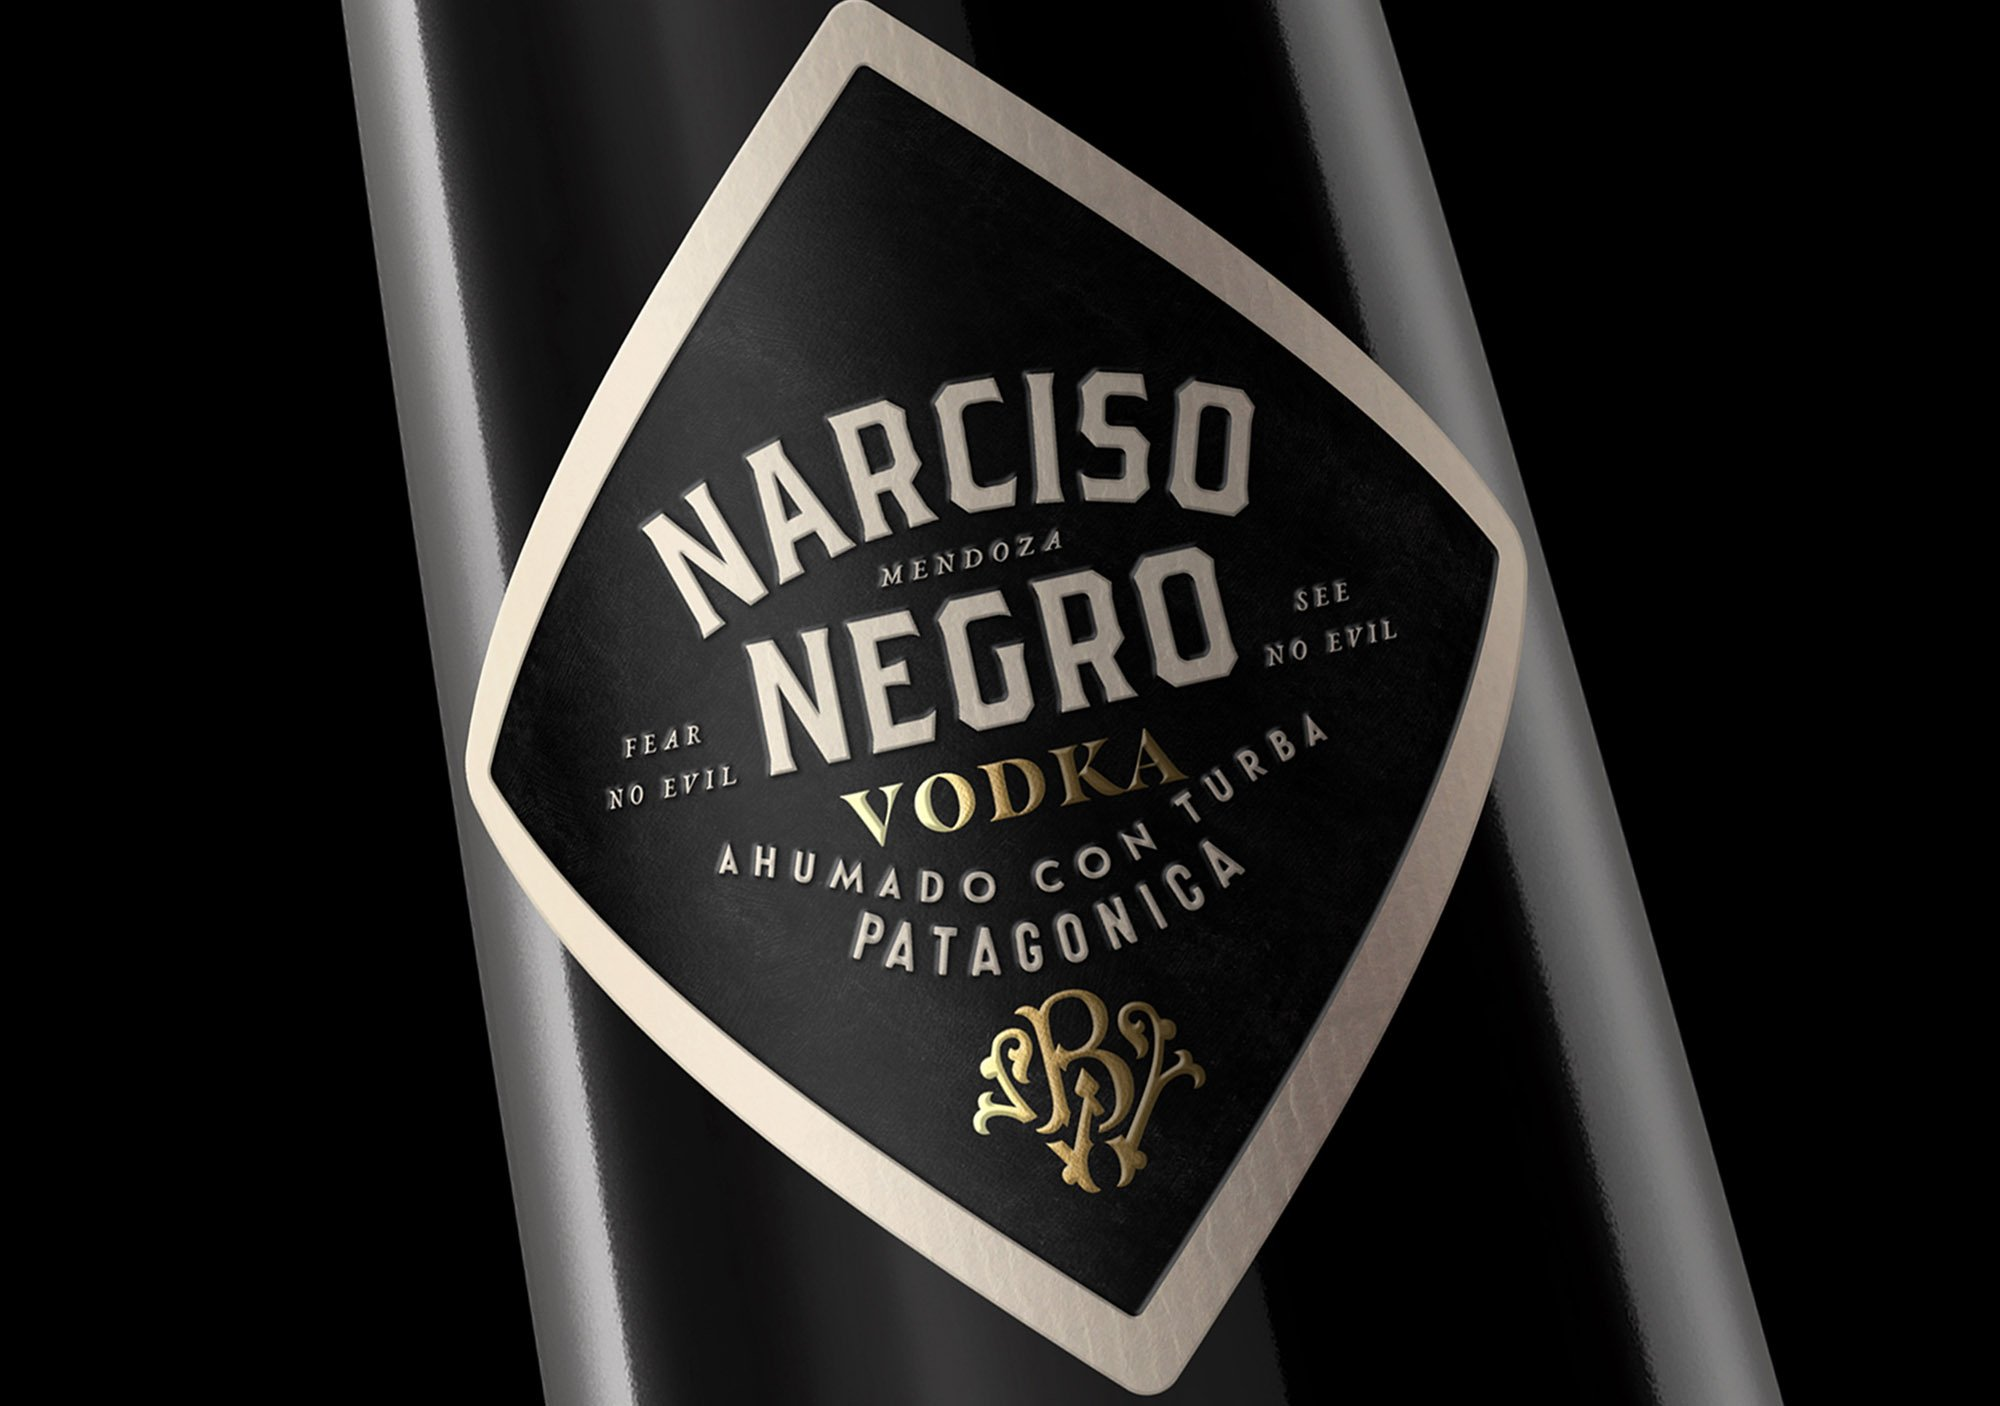 narciso negro vodka